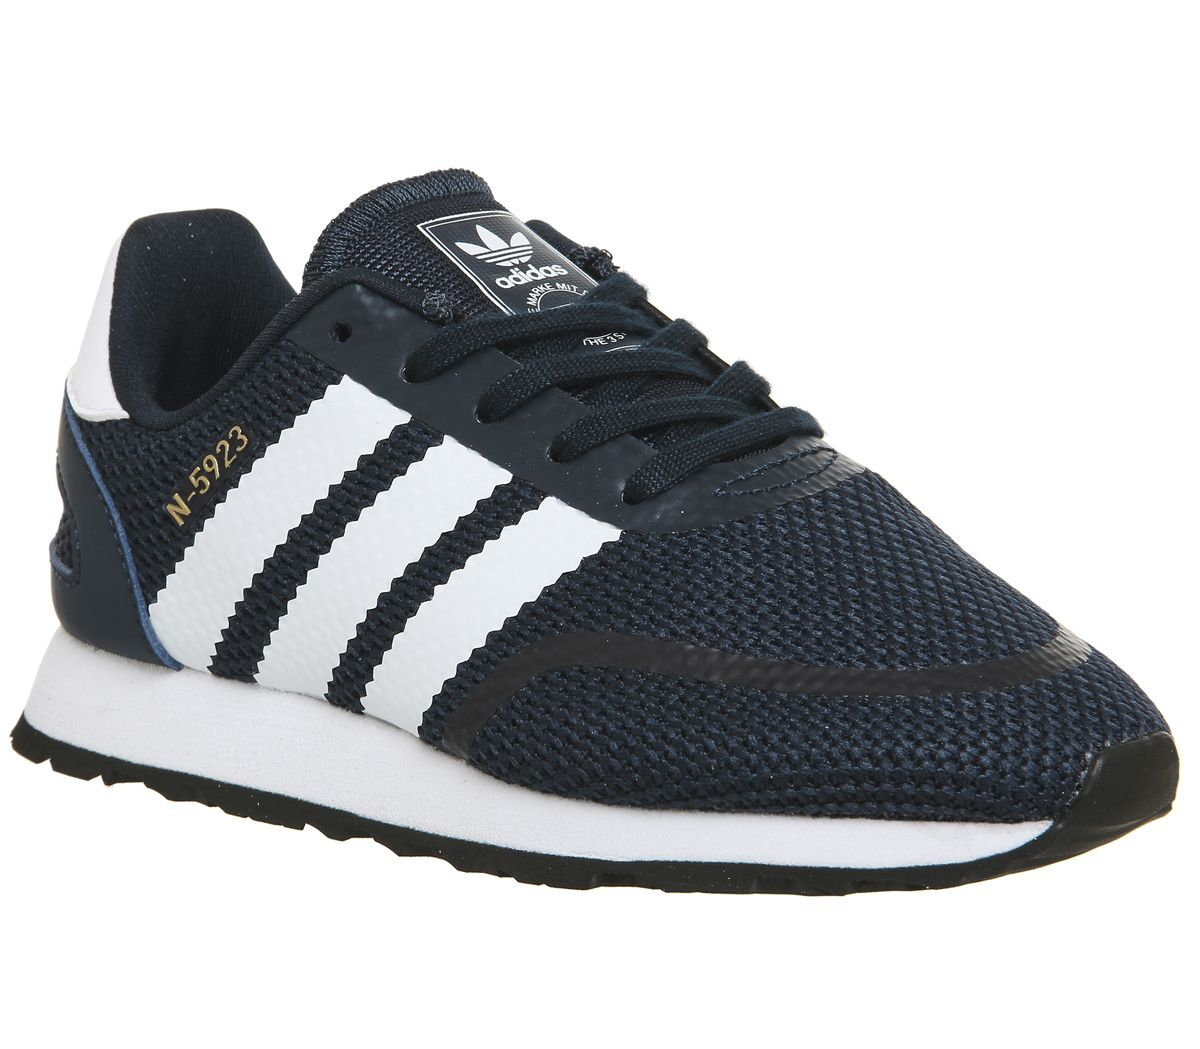 newest 94849 c991a adidas N-5923 Kids Trainers Collegiate Navy White - Unisex